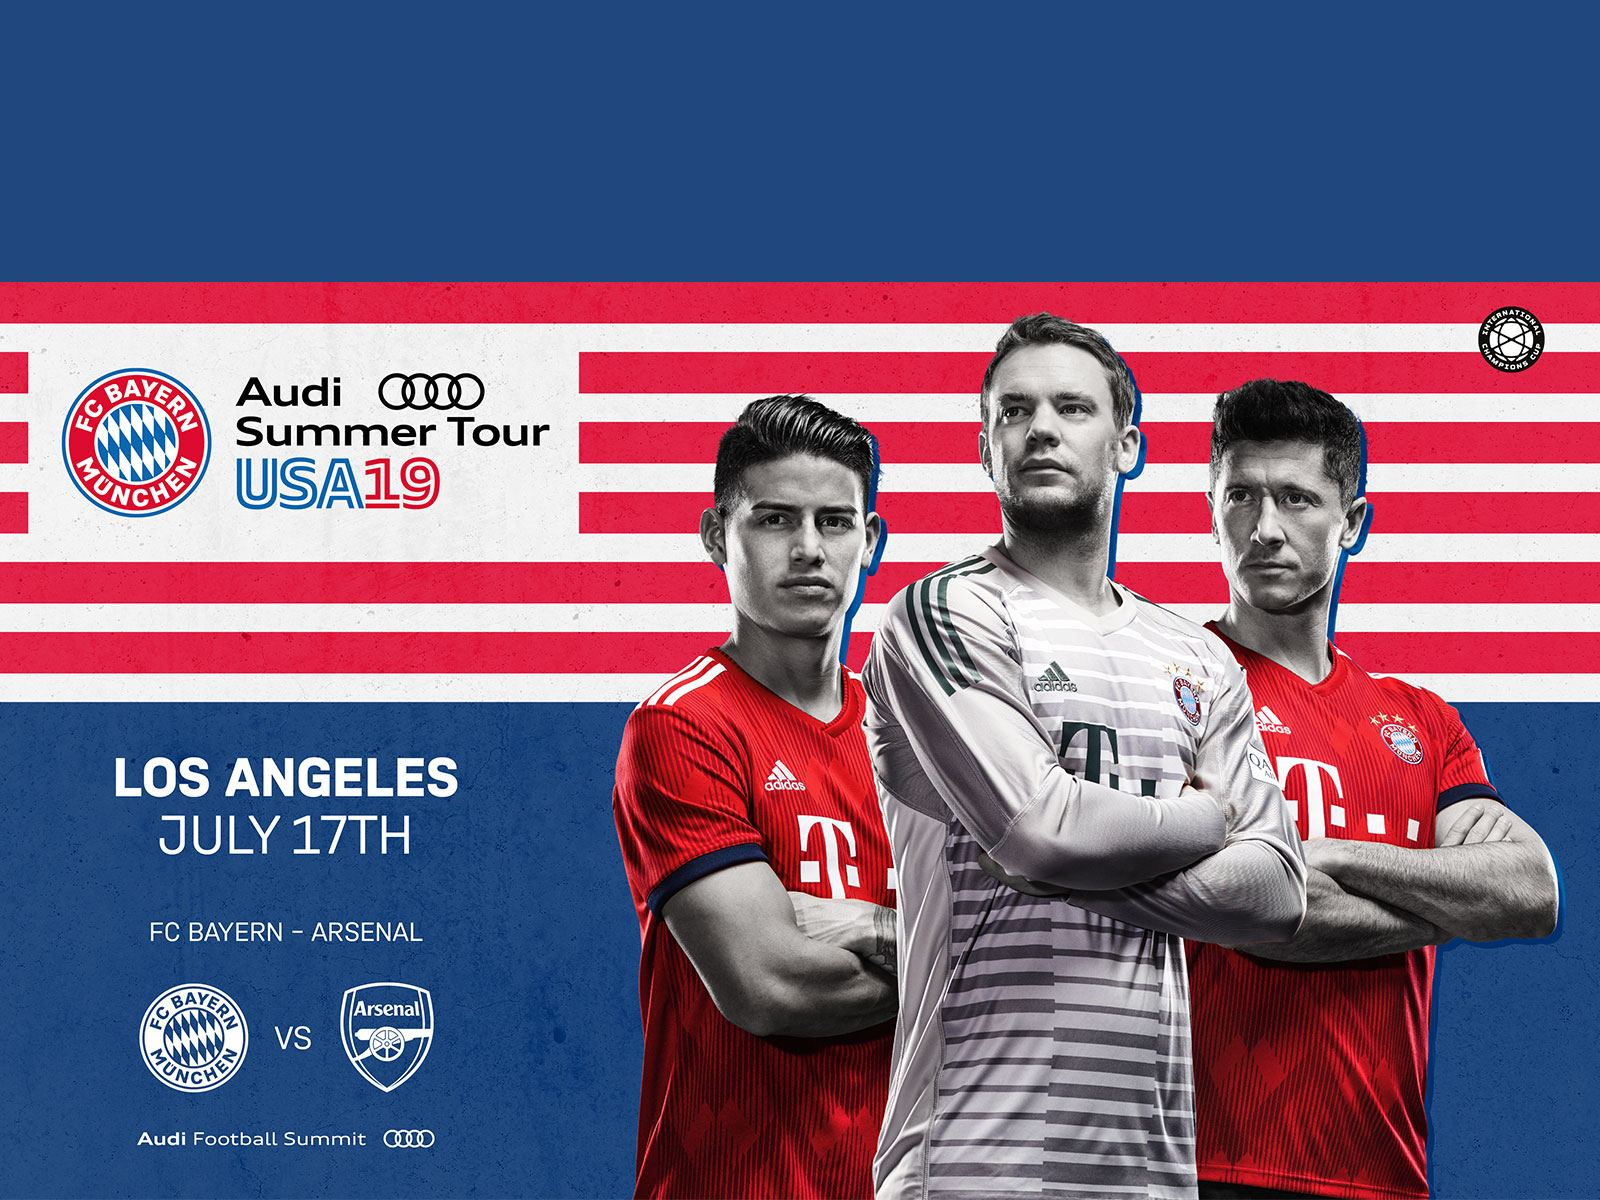 Main image for event titled International Champions Cup: FC Bayern vs Arsenal